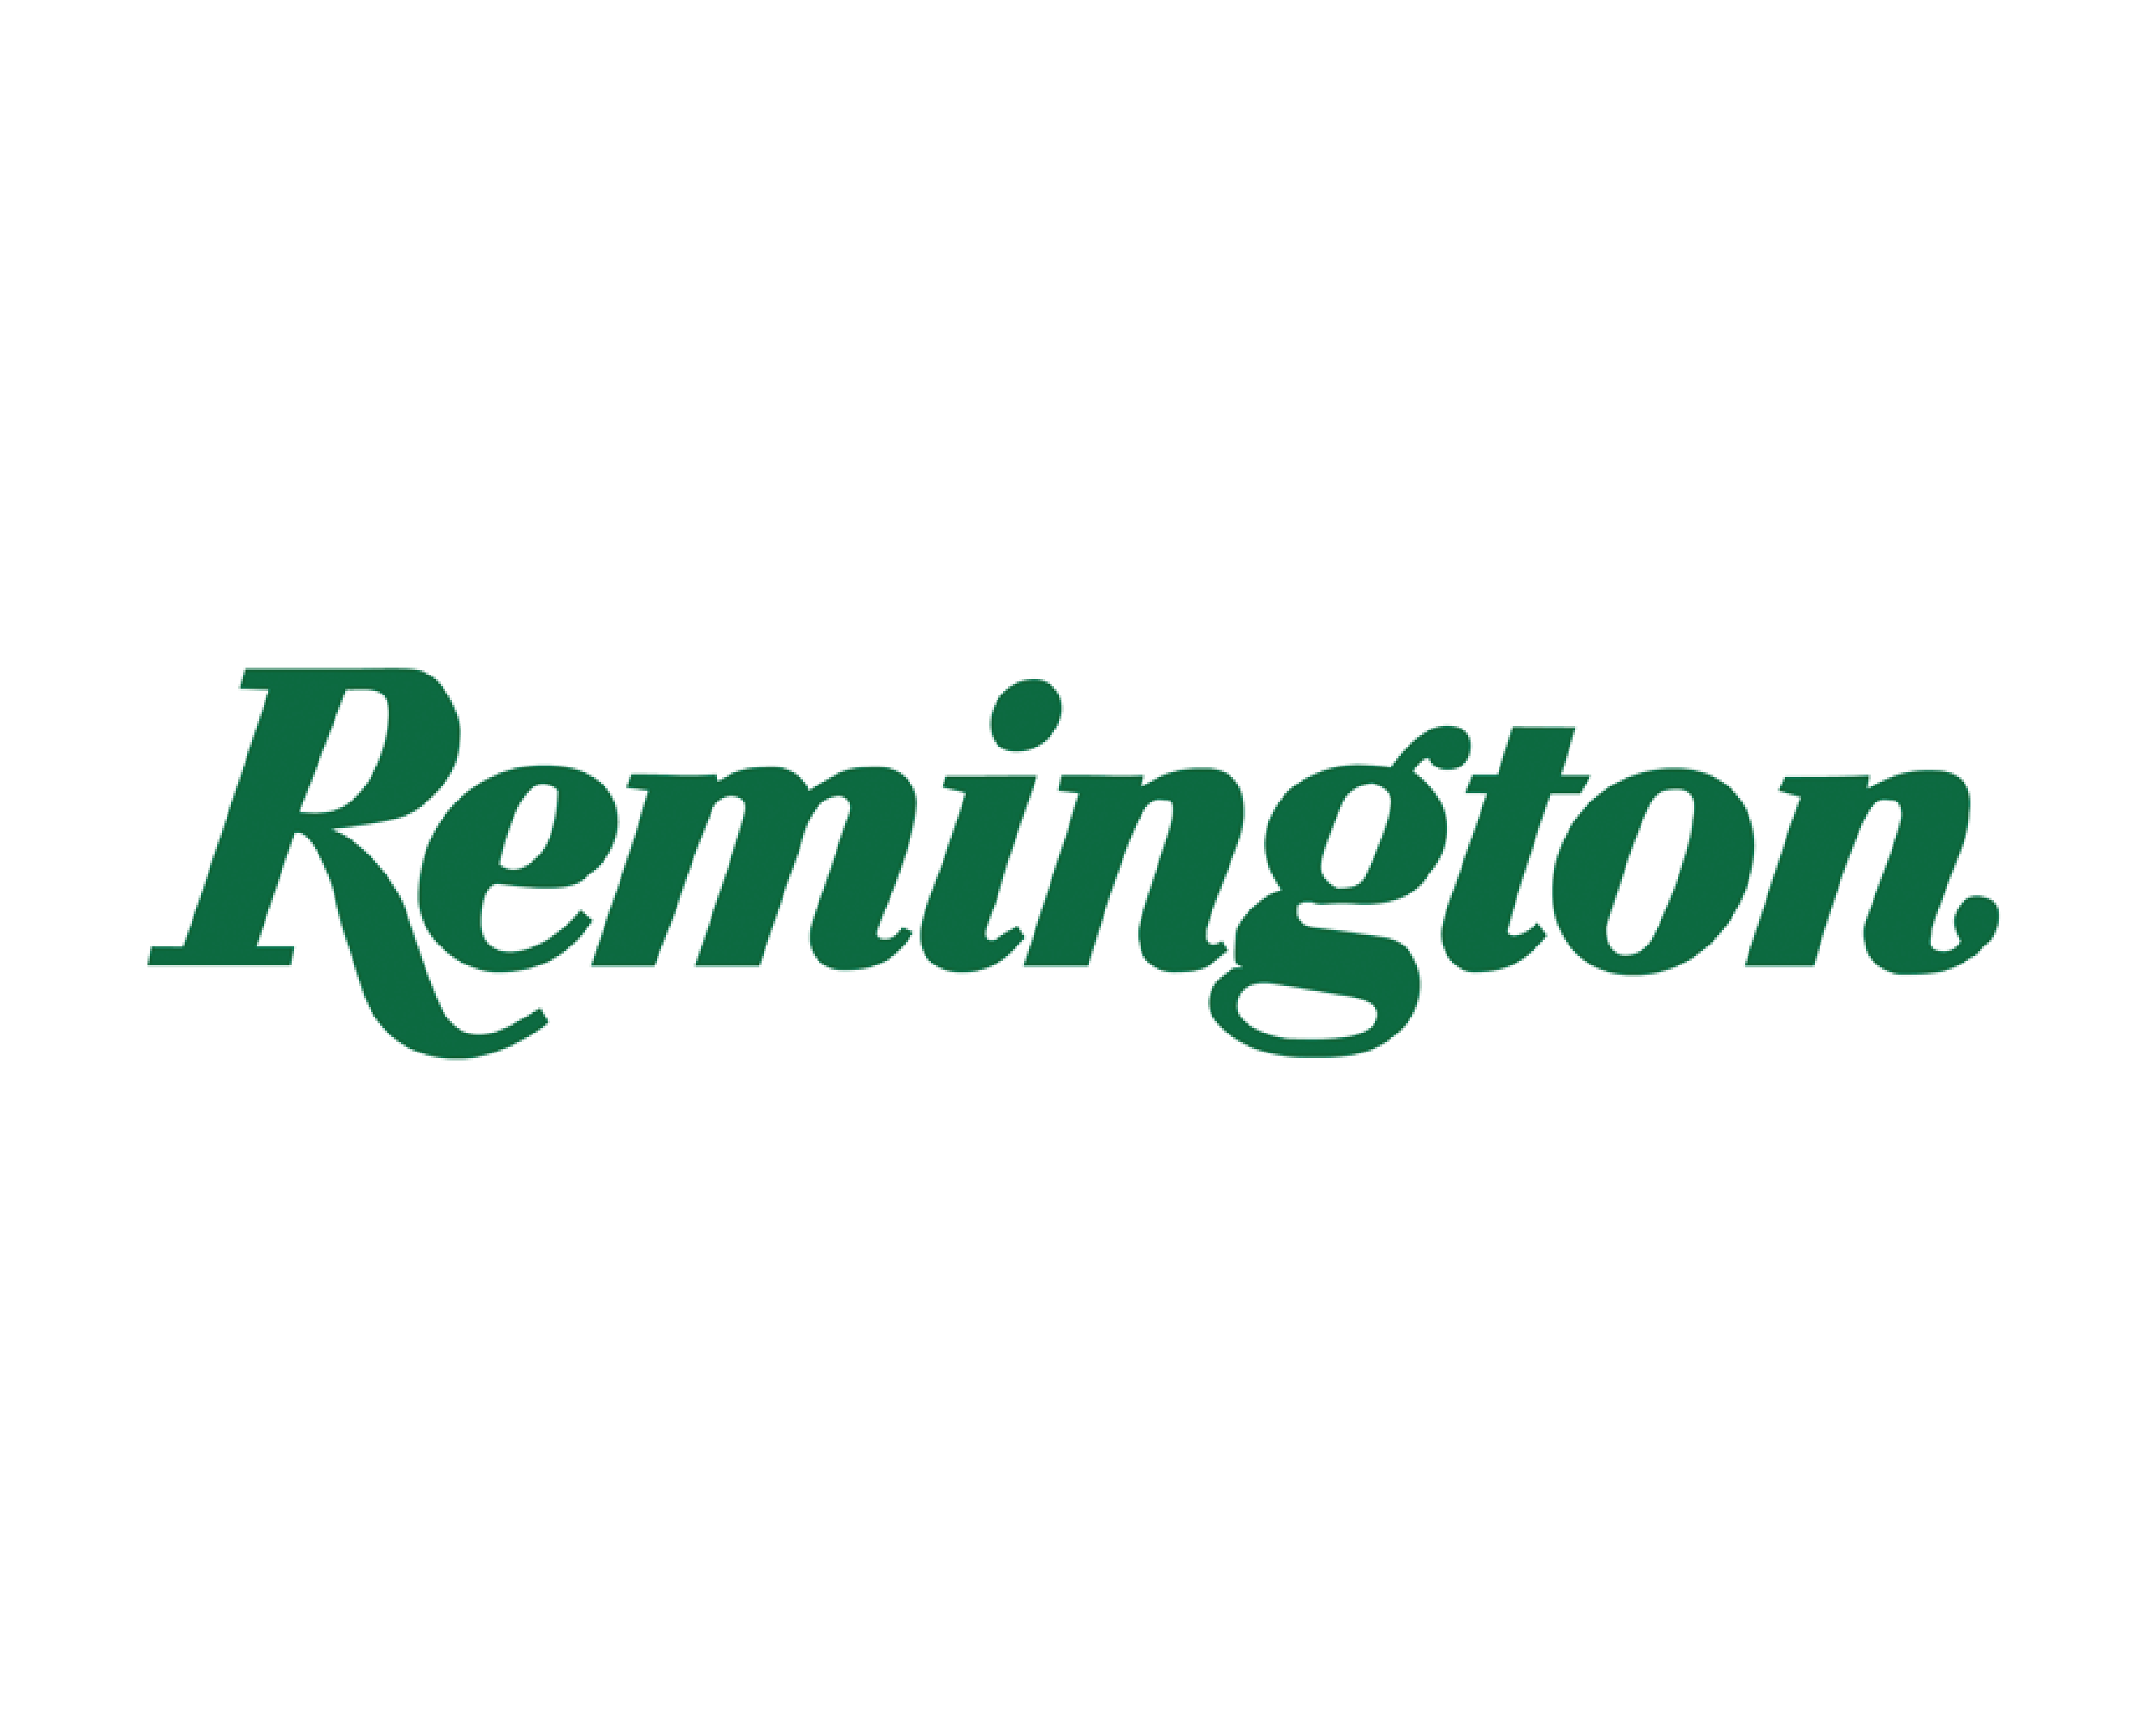 //centre-tir.ch/wp-content/uploads/2017/10/logo-REMINGTON.png